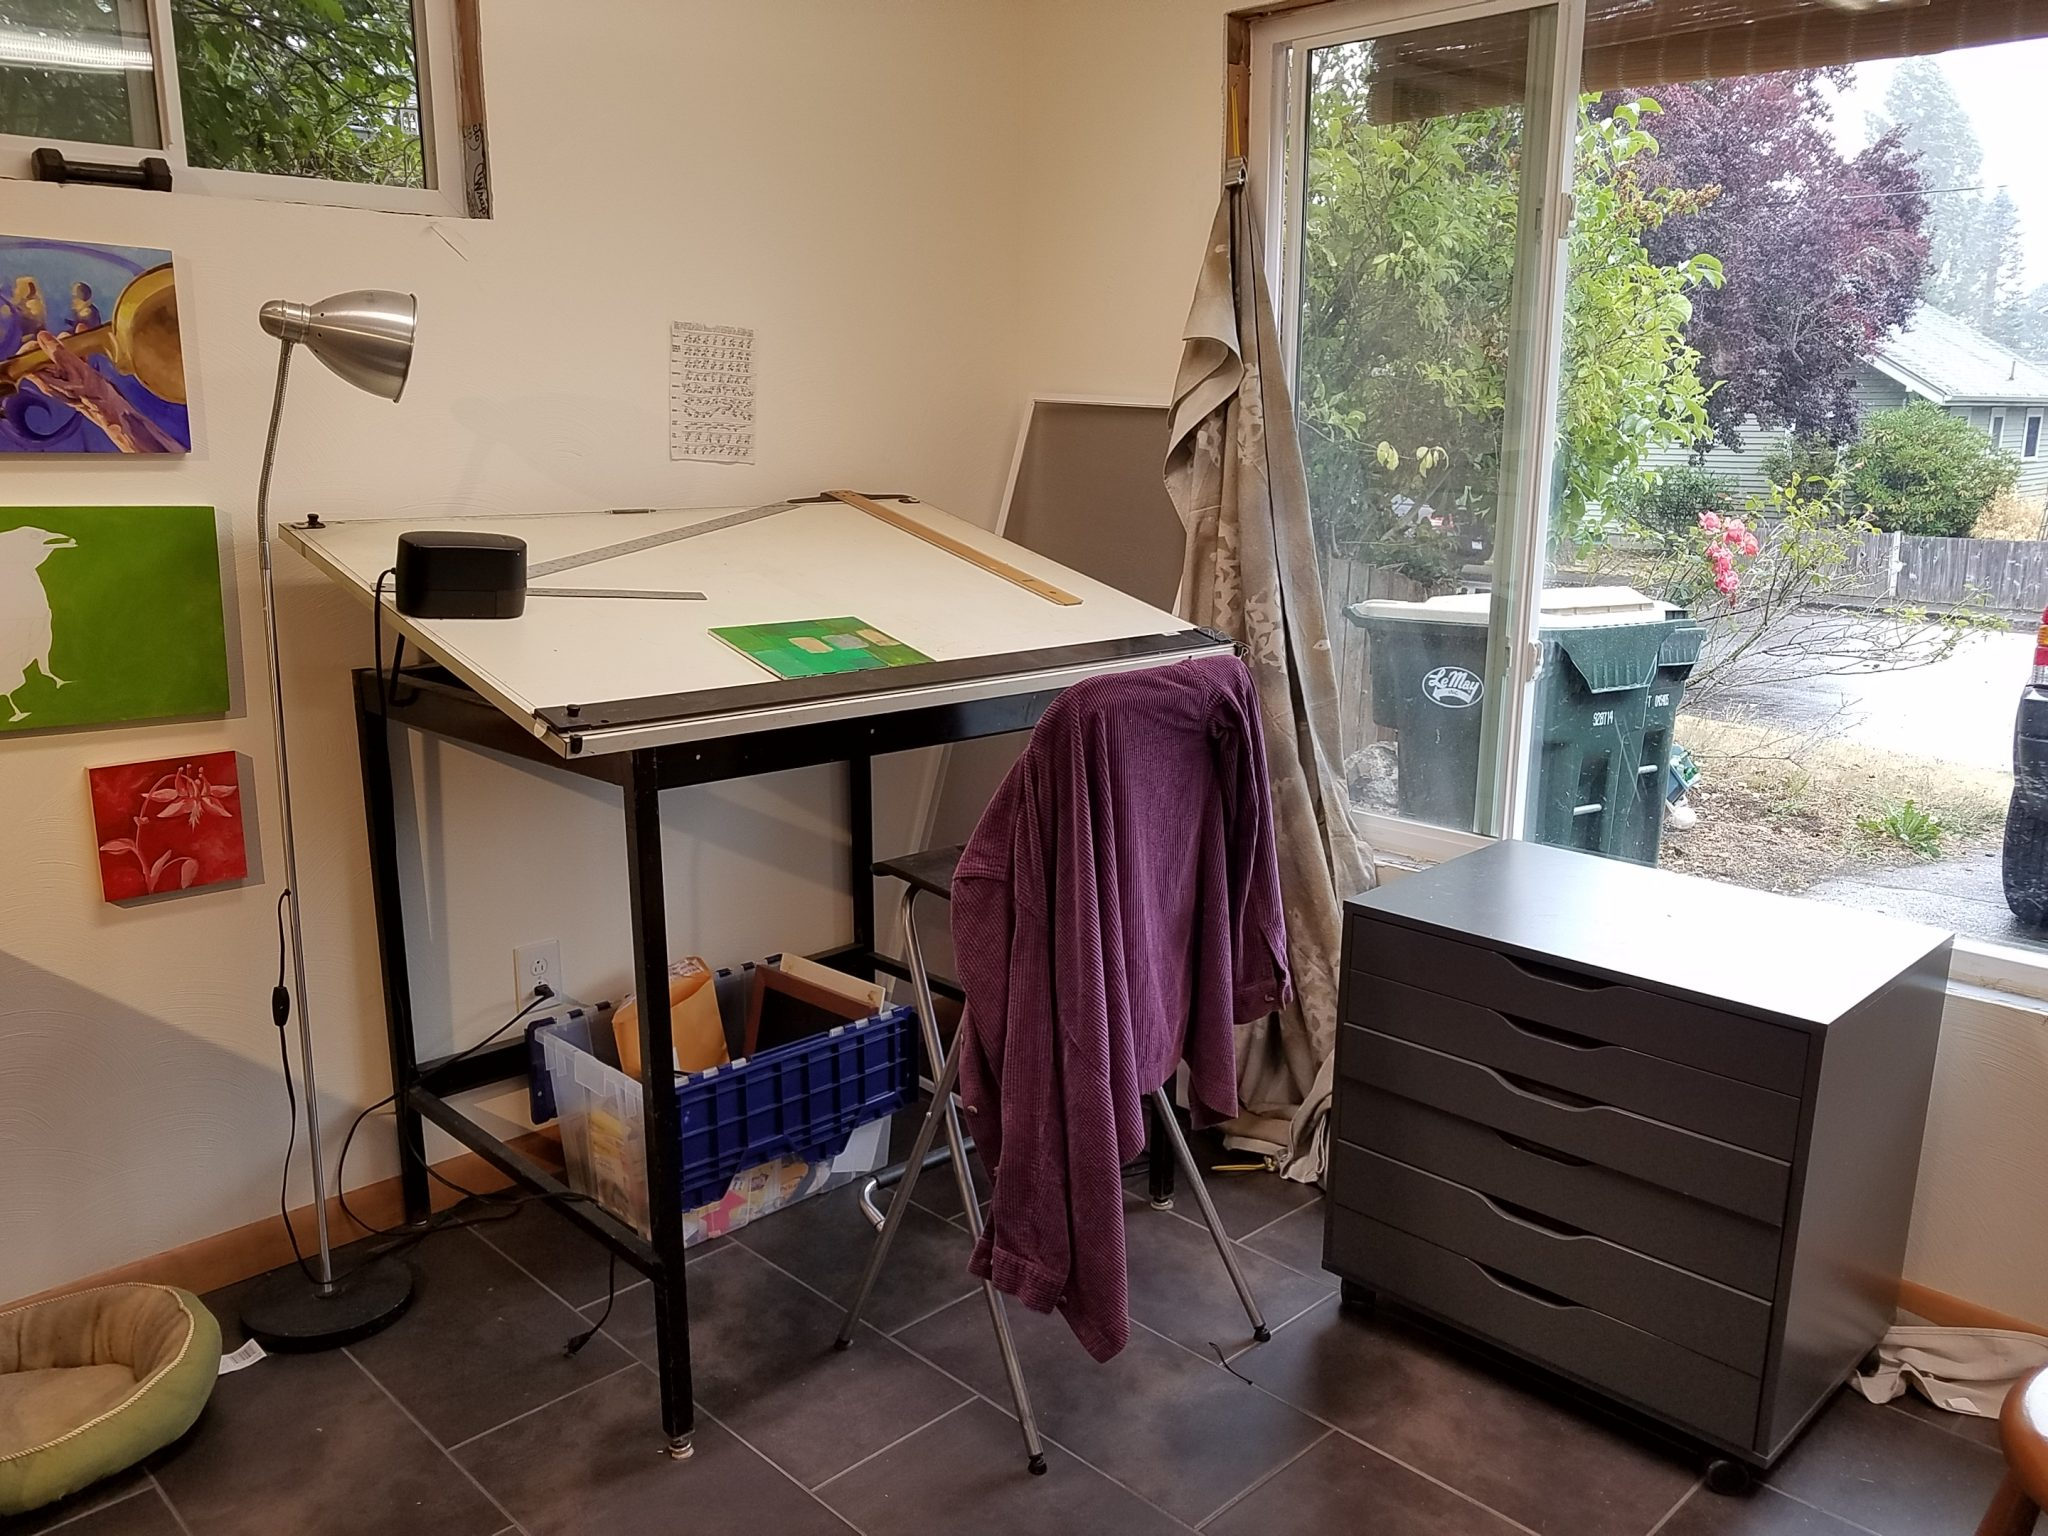 A picture of a room with a large metal drafting table in the corner and a smaller wheeled chest of drawers under a window.